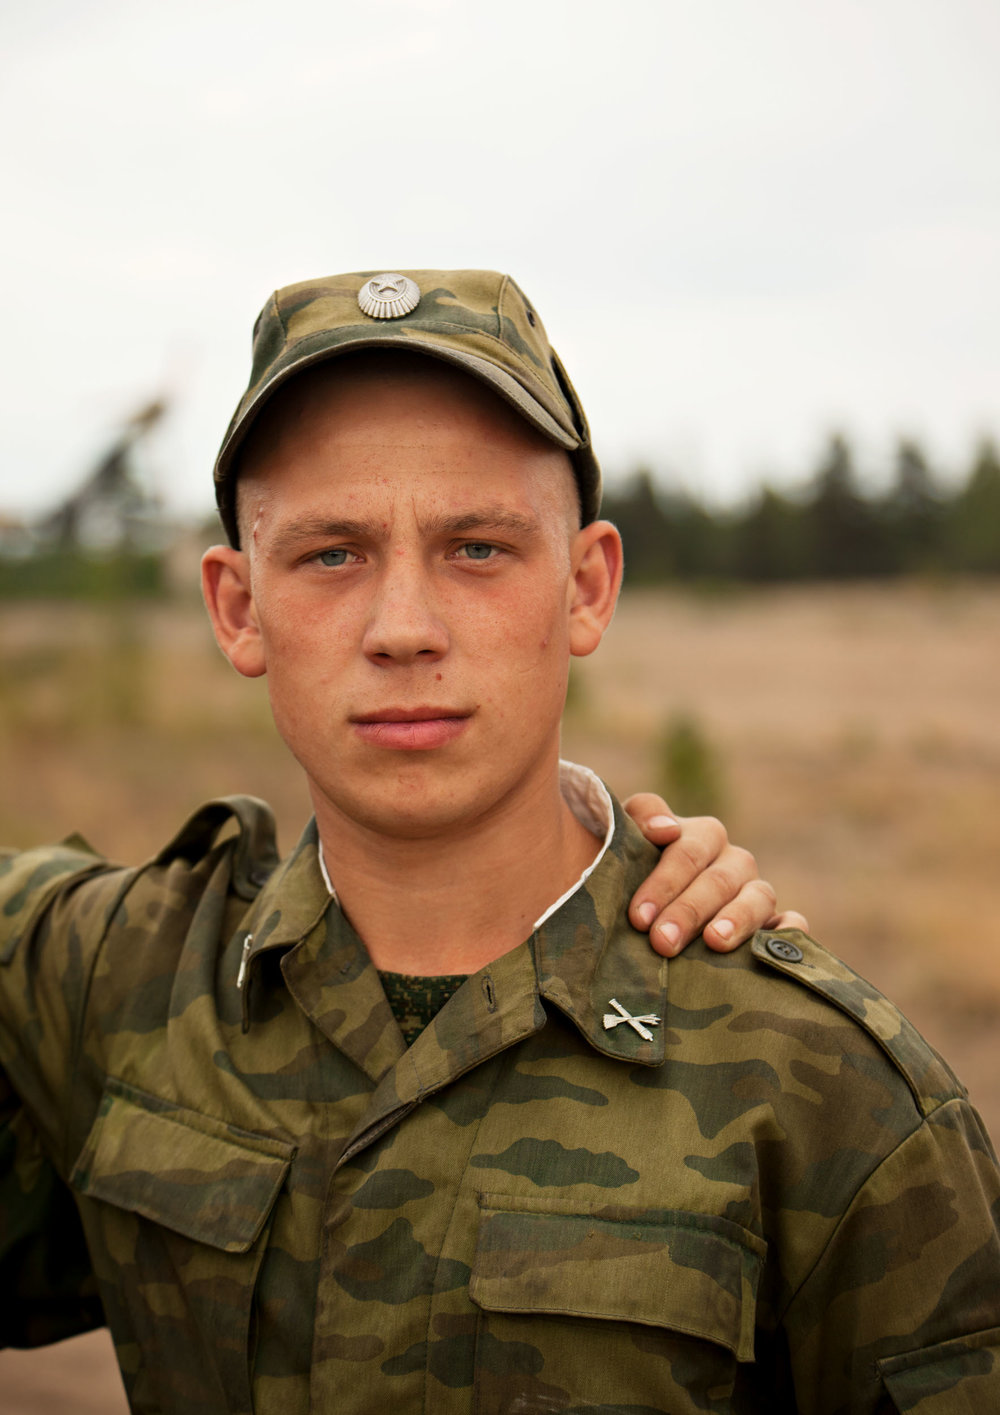 Young Soldier 4  2011, archival pigment print 134 x 95 cm / 53 x 37.5 in. Edition of 5